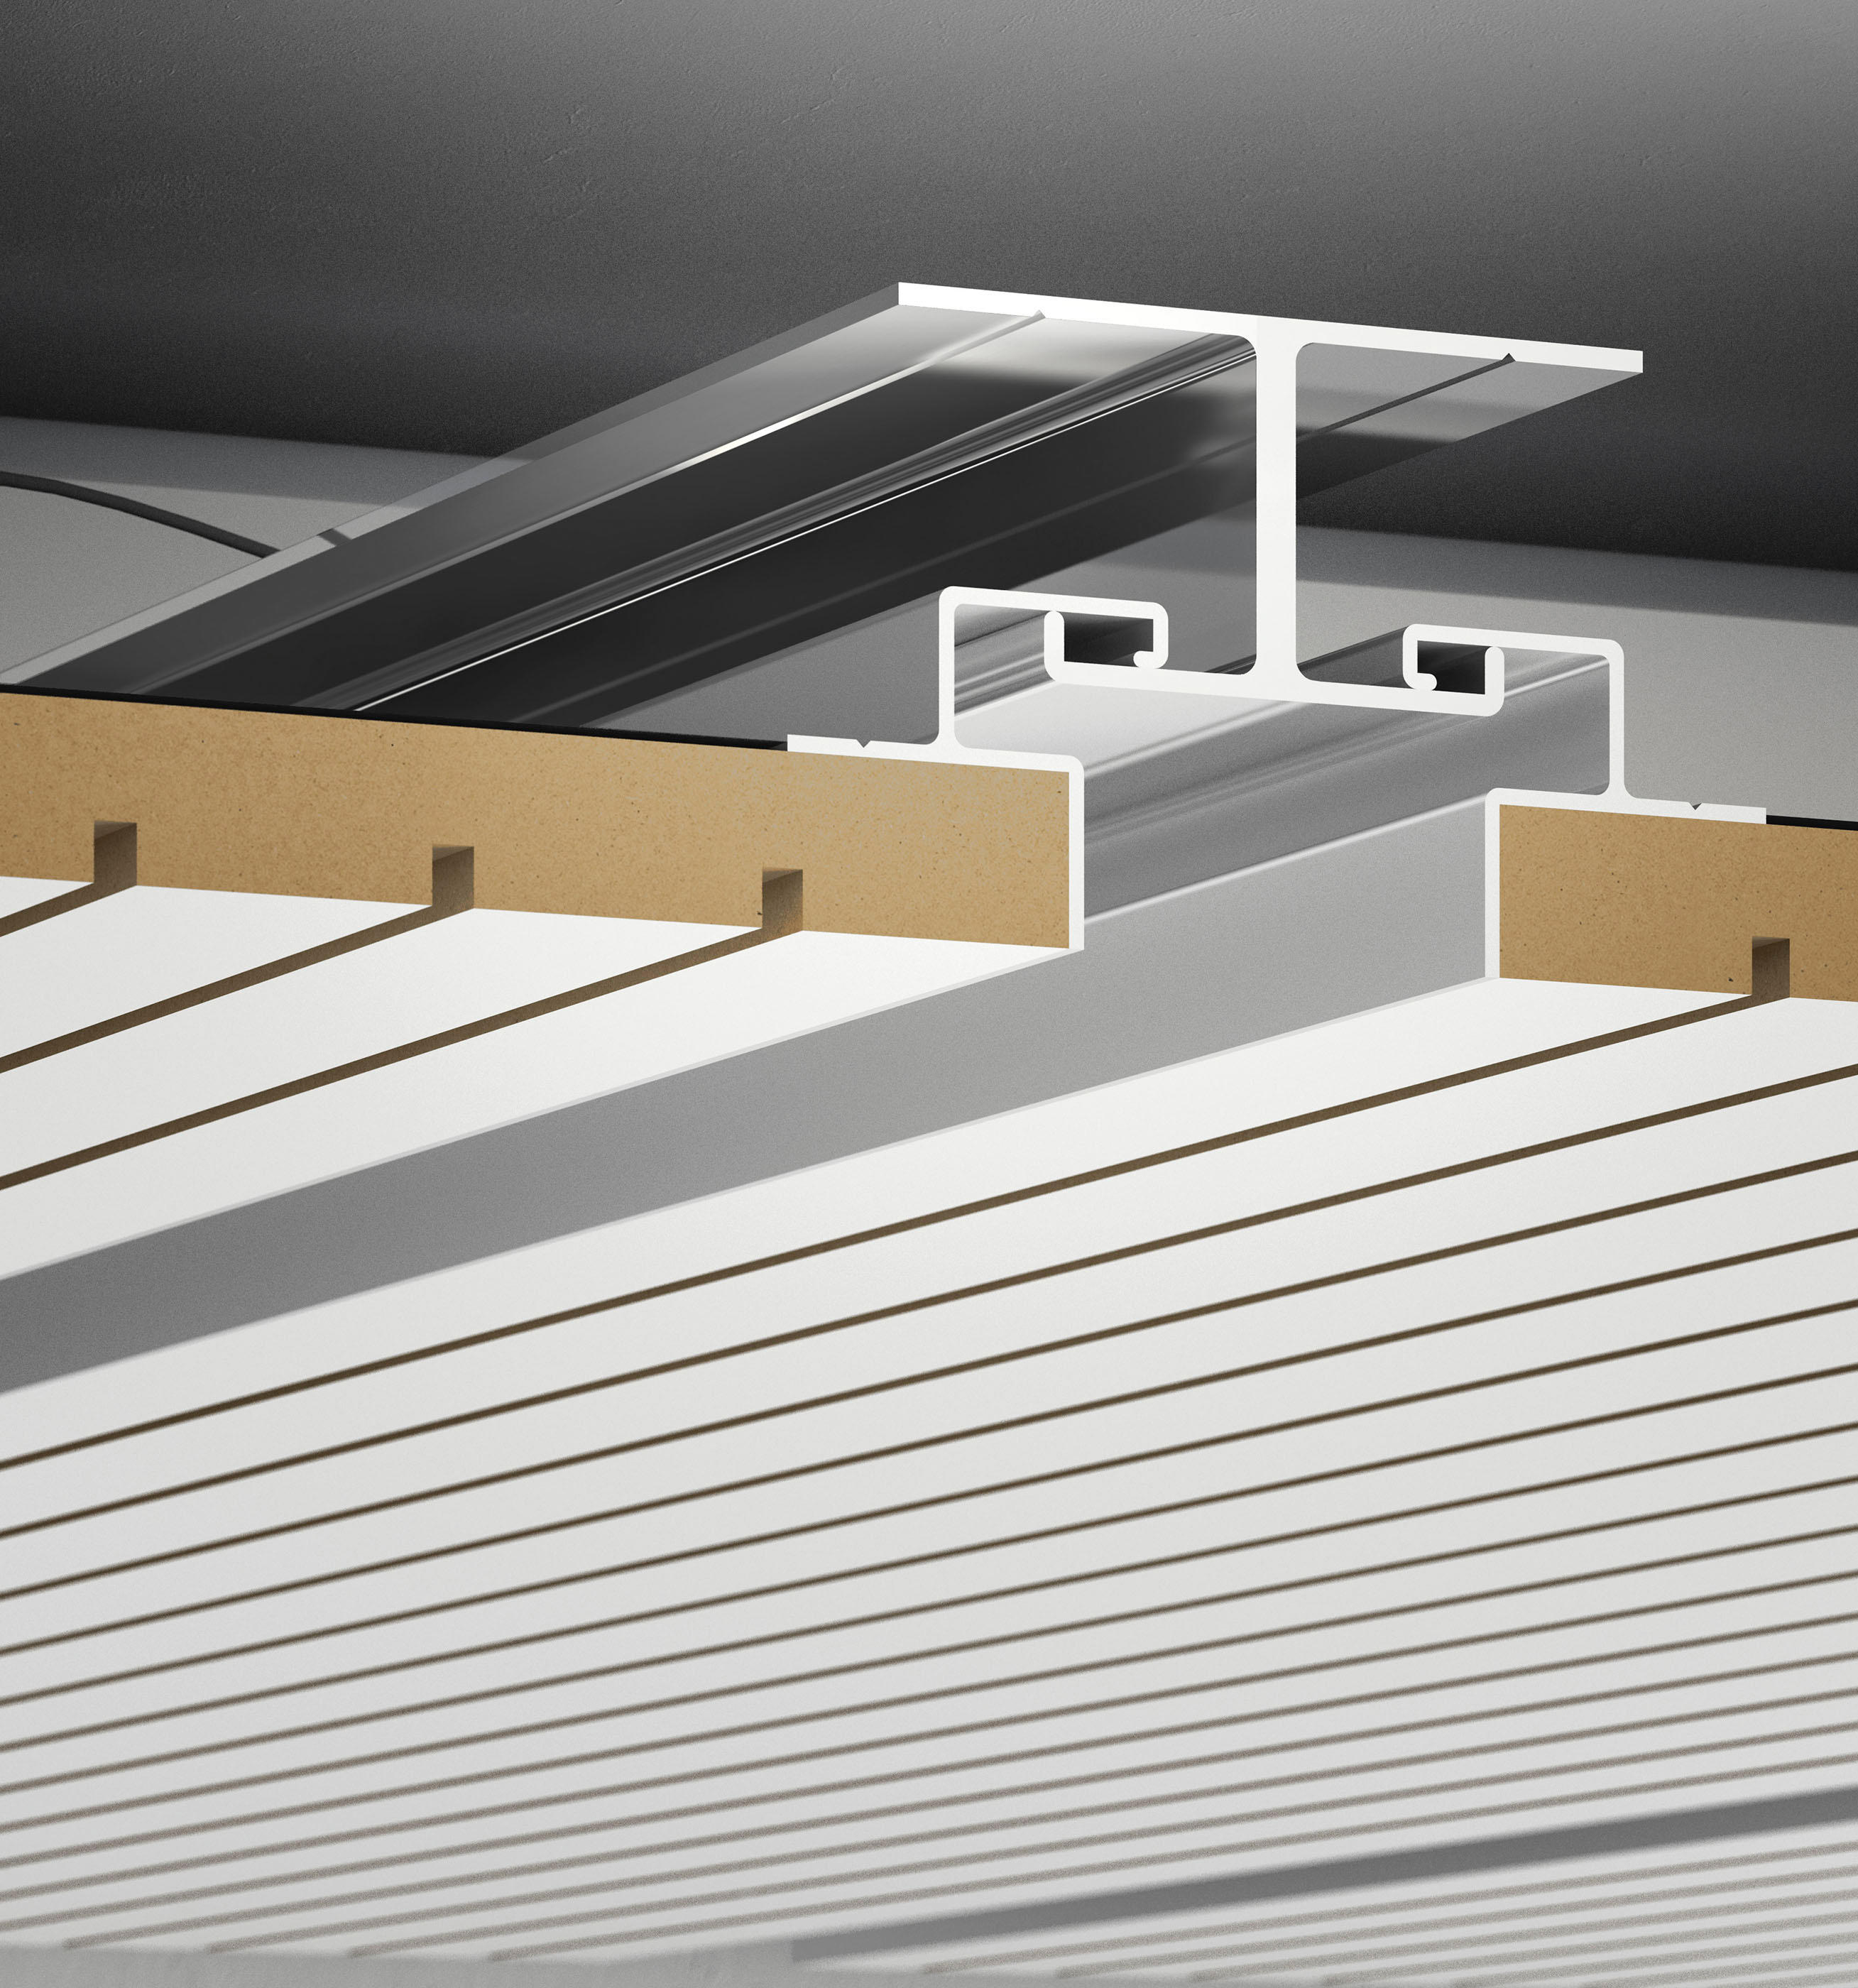 Easy Access By Fantoni Suspended Ceilings